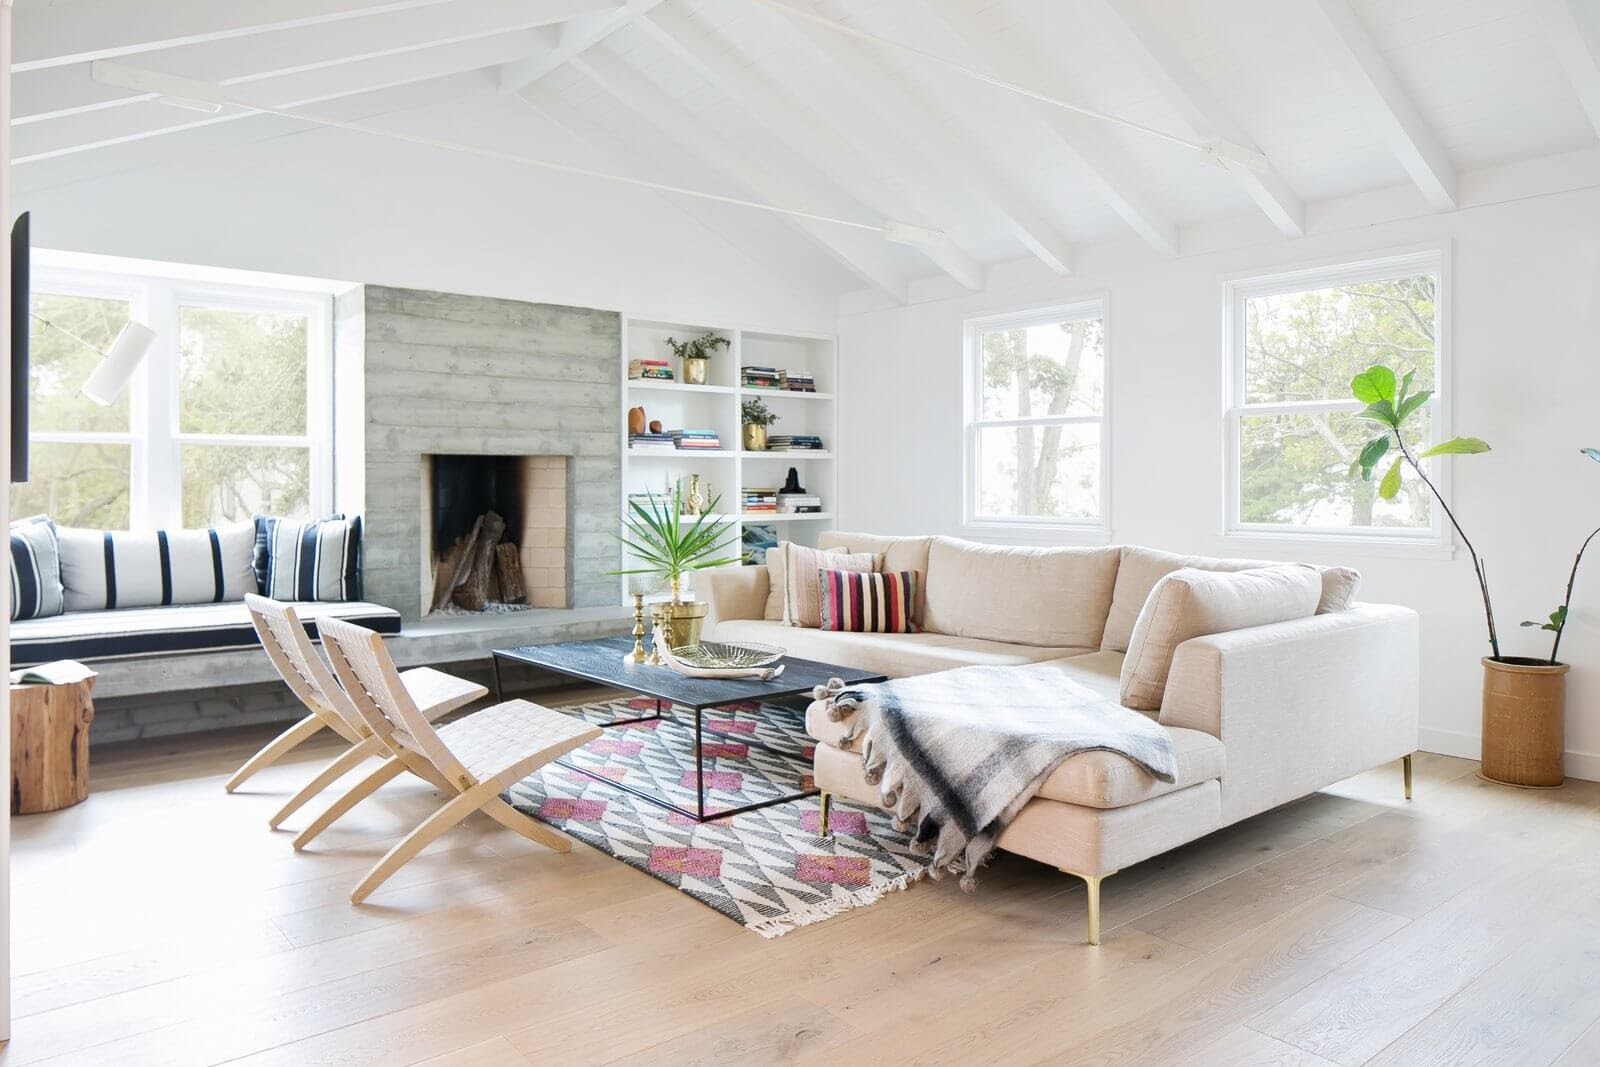 A ranch house living room with Scandinavian design elements